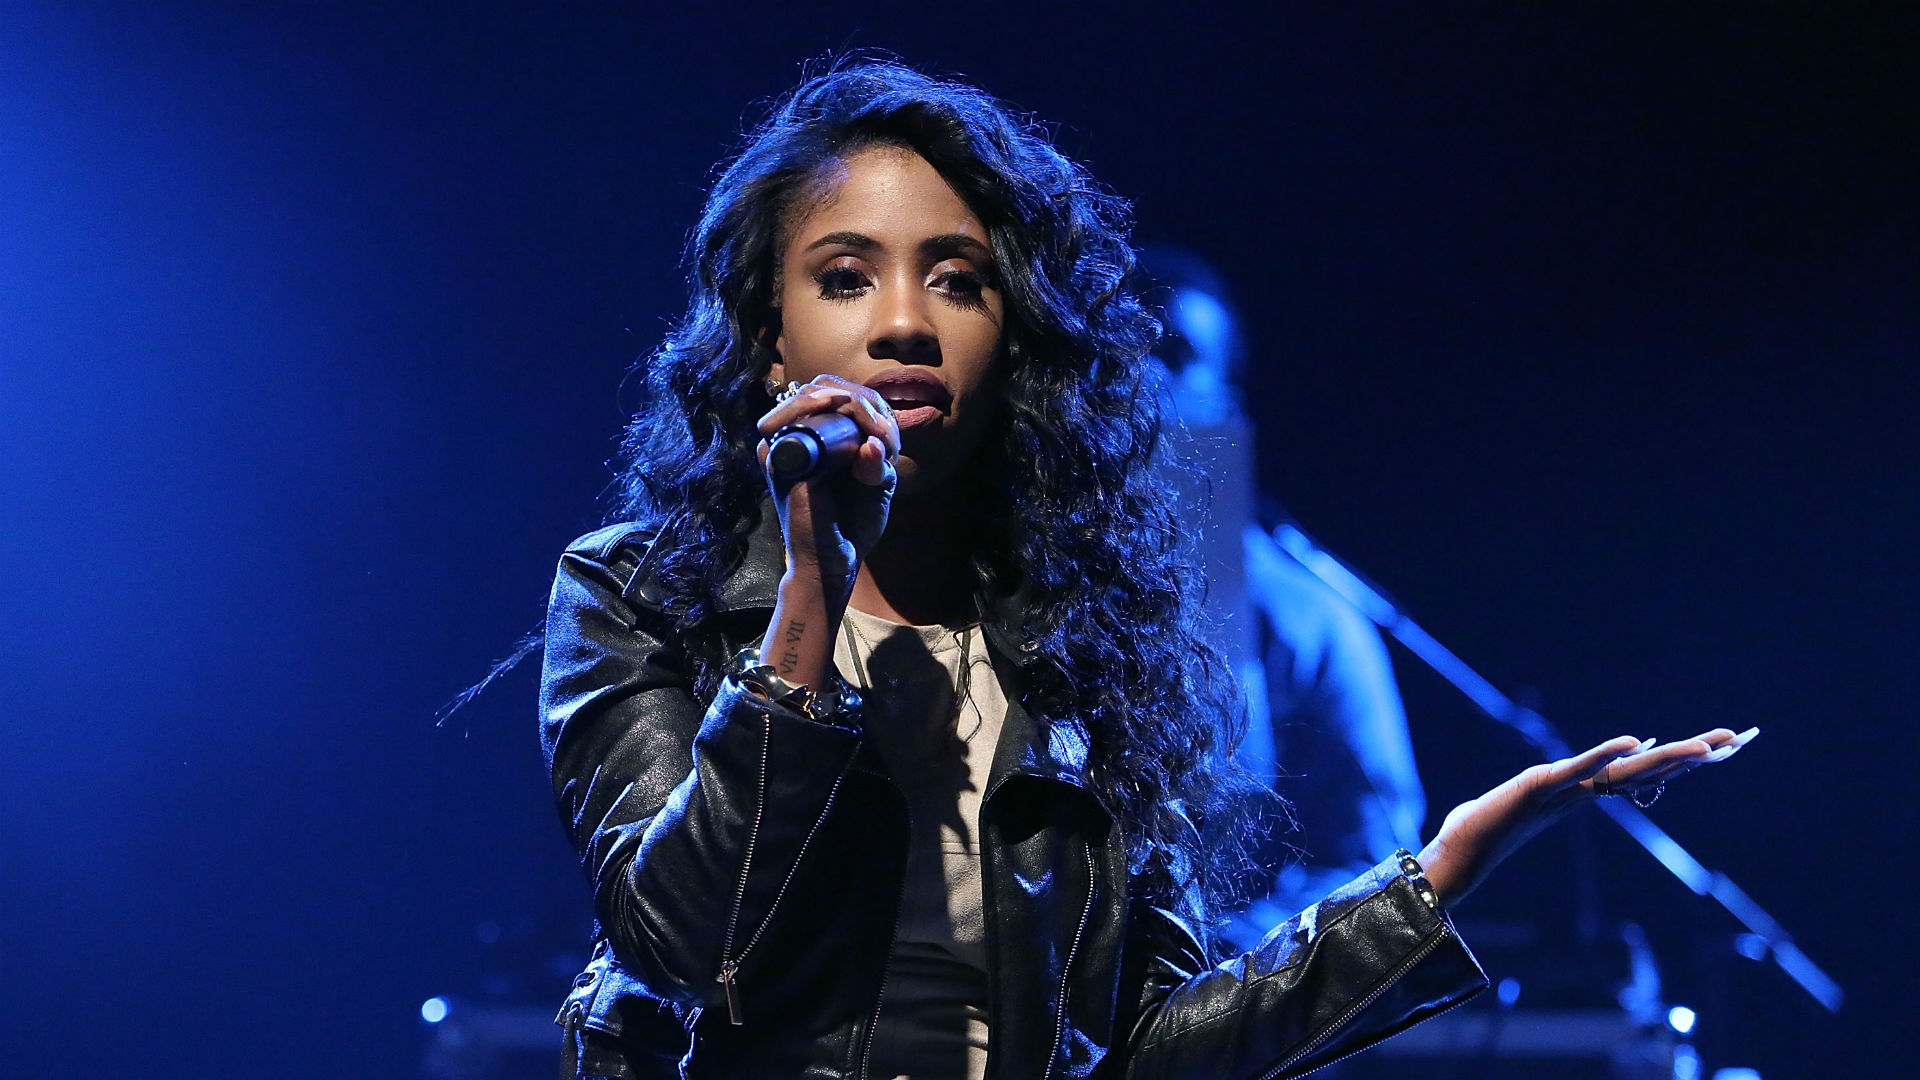 76ers' anthem singer Sevyn Streeter took the stand NBA players backed away from | Sporting News